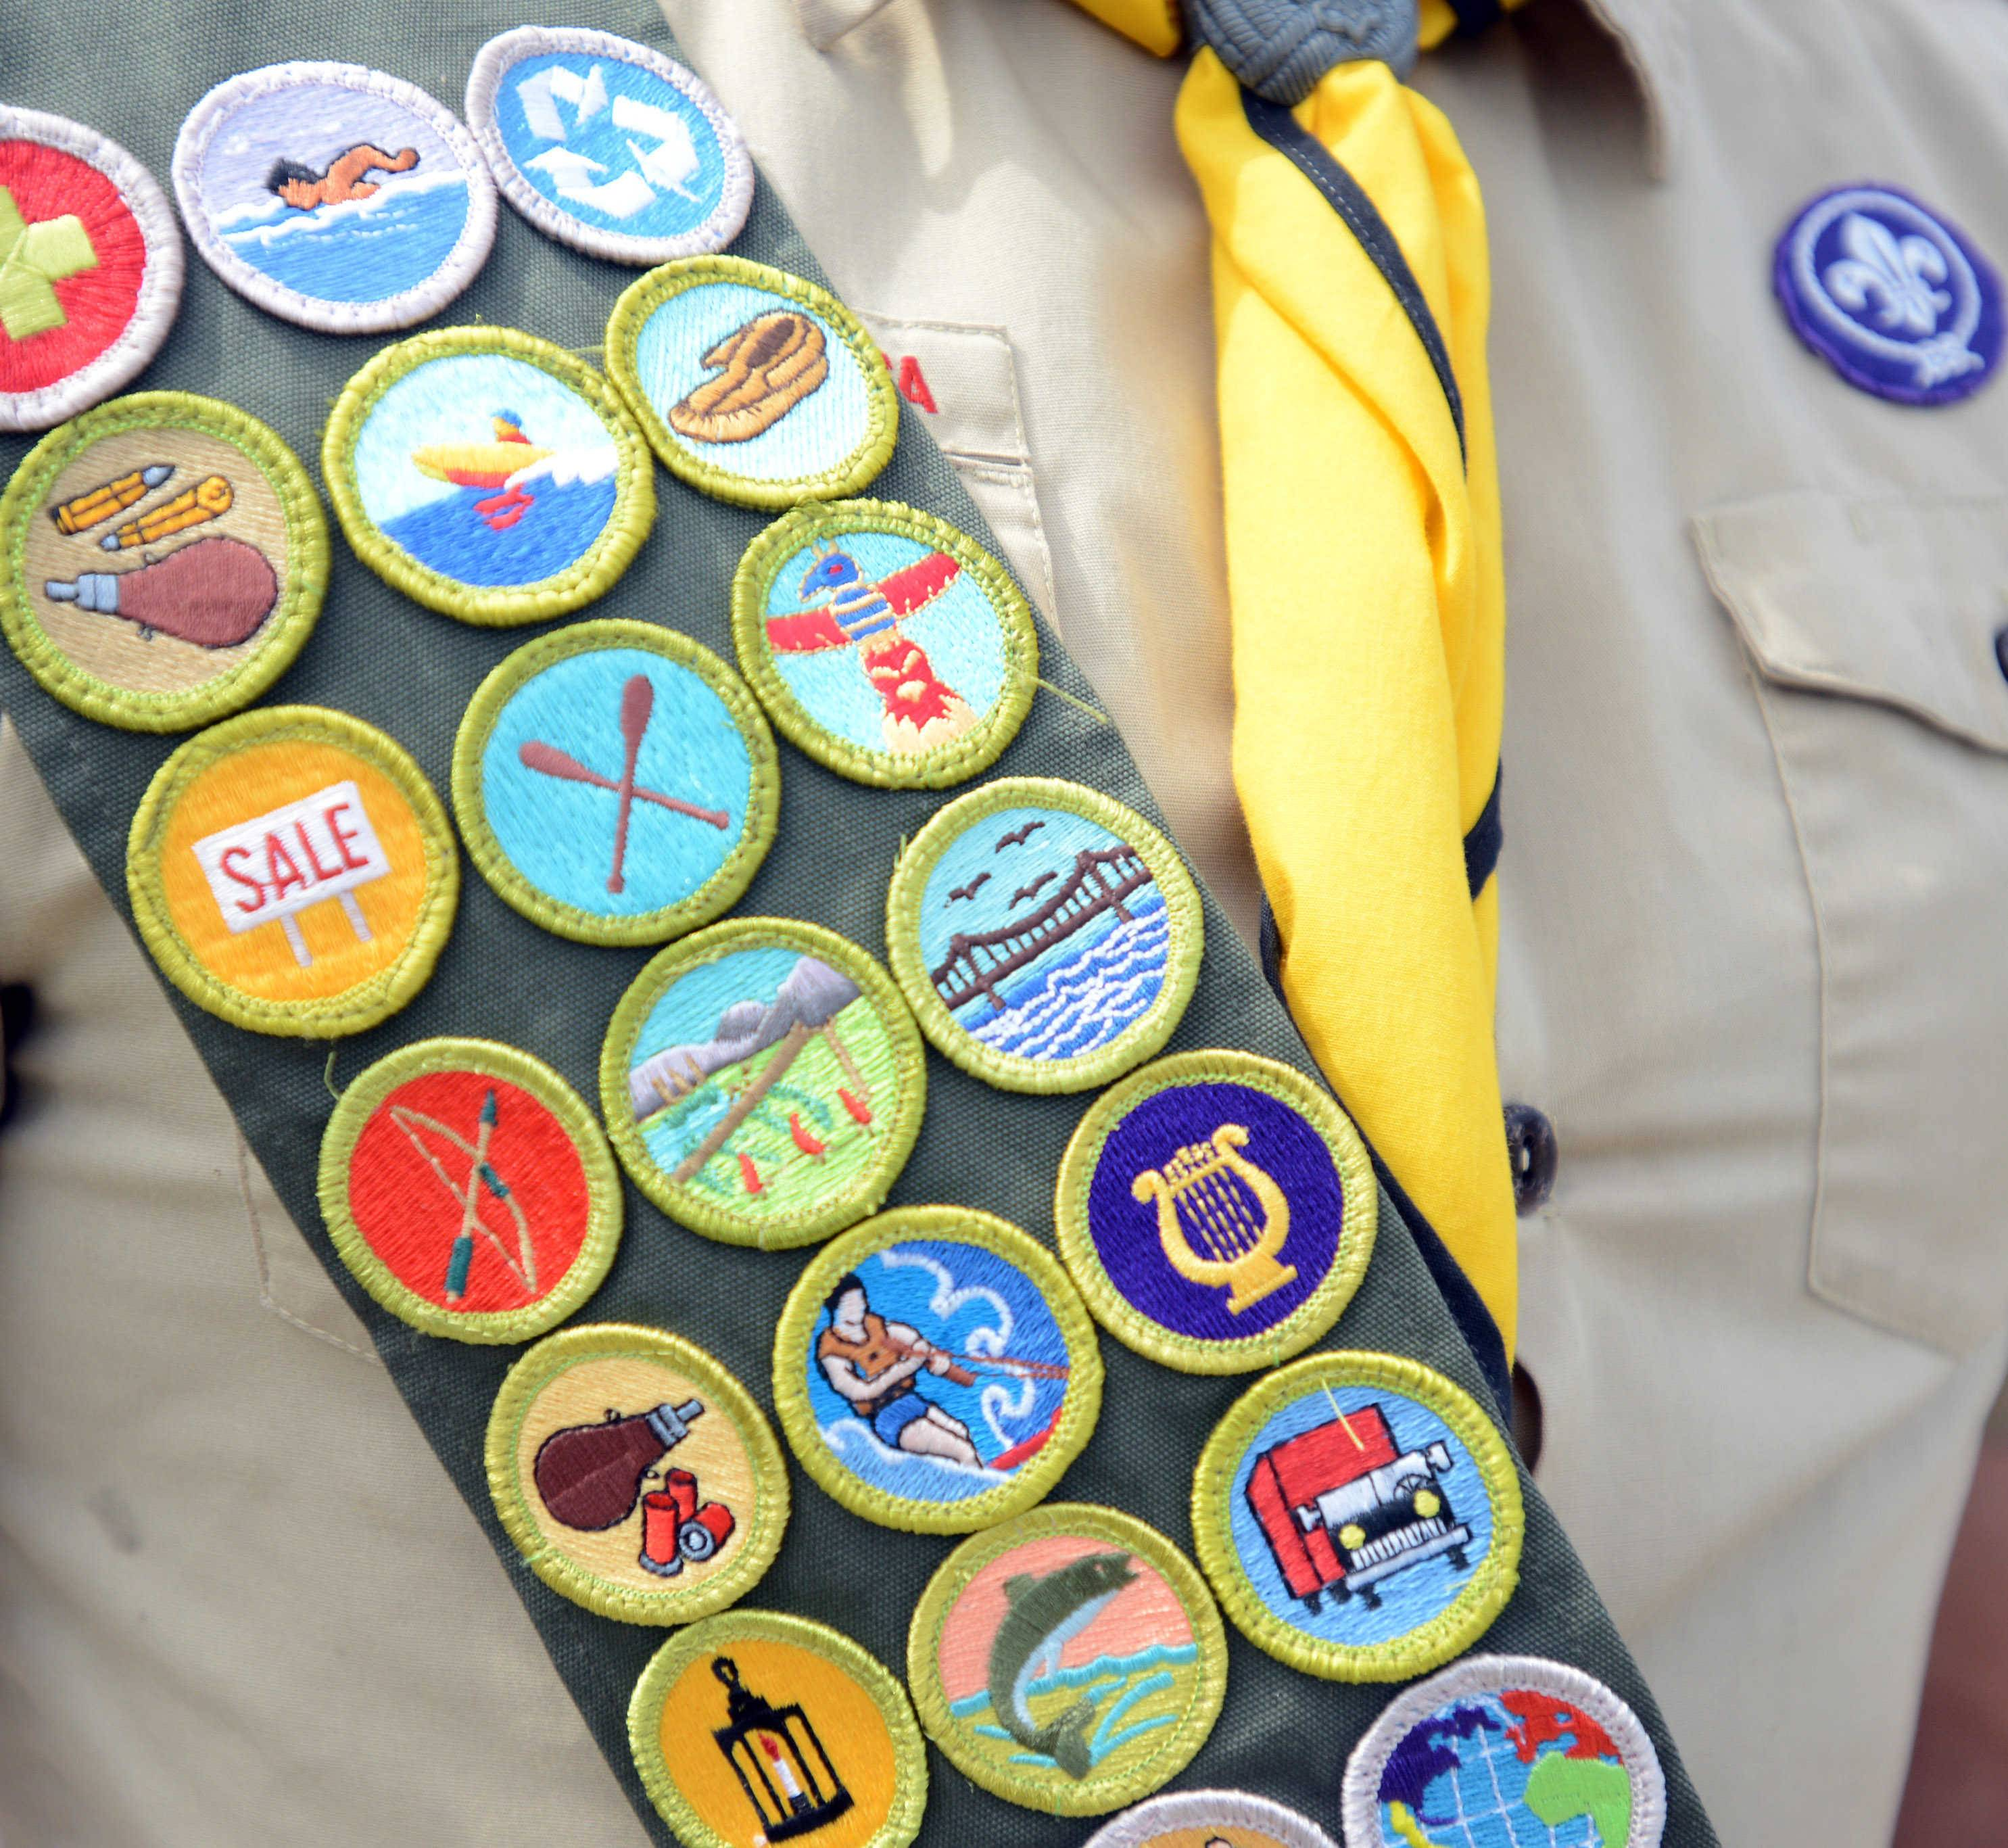 John Meyer, 17, of Des Plaines dons his merit badges Monday afternoon at the senior center in Des Plaines.